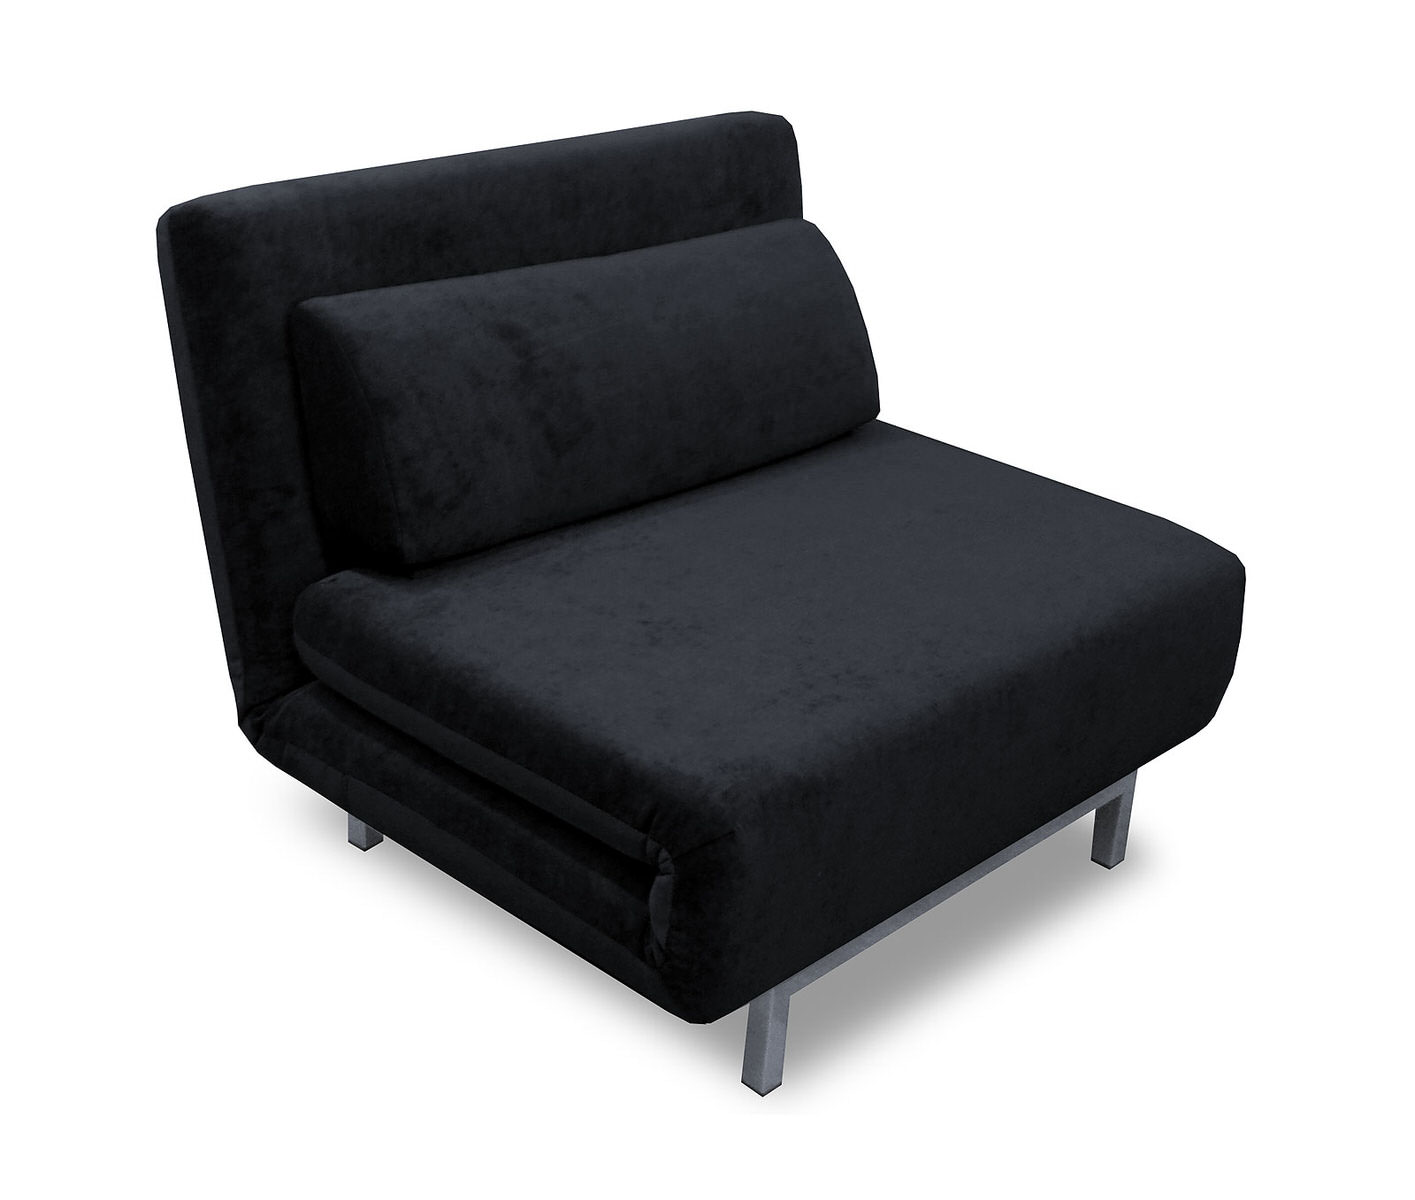 Bed Chair Convertible Black Chenille Chair Bed Lk06 By Ido